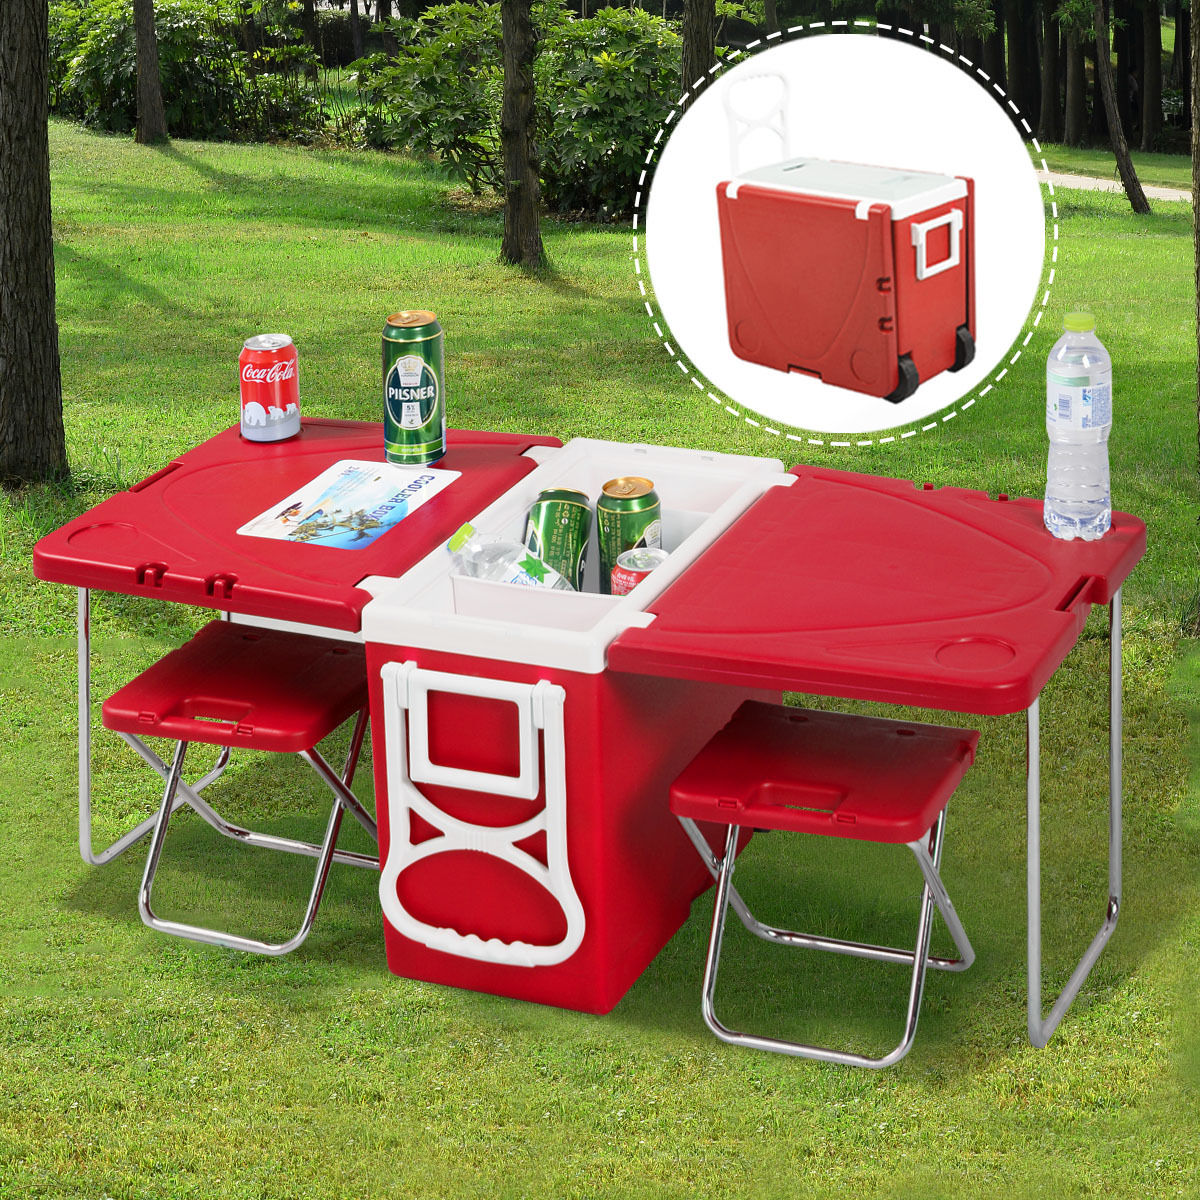 Picnic Chair Multi Function Rolling Cooler Picnic Table W 2 Chairs